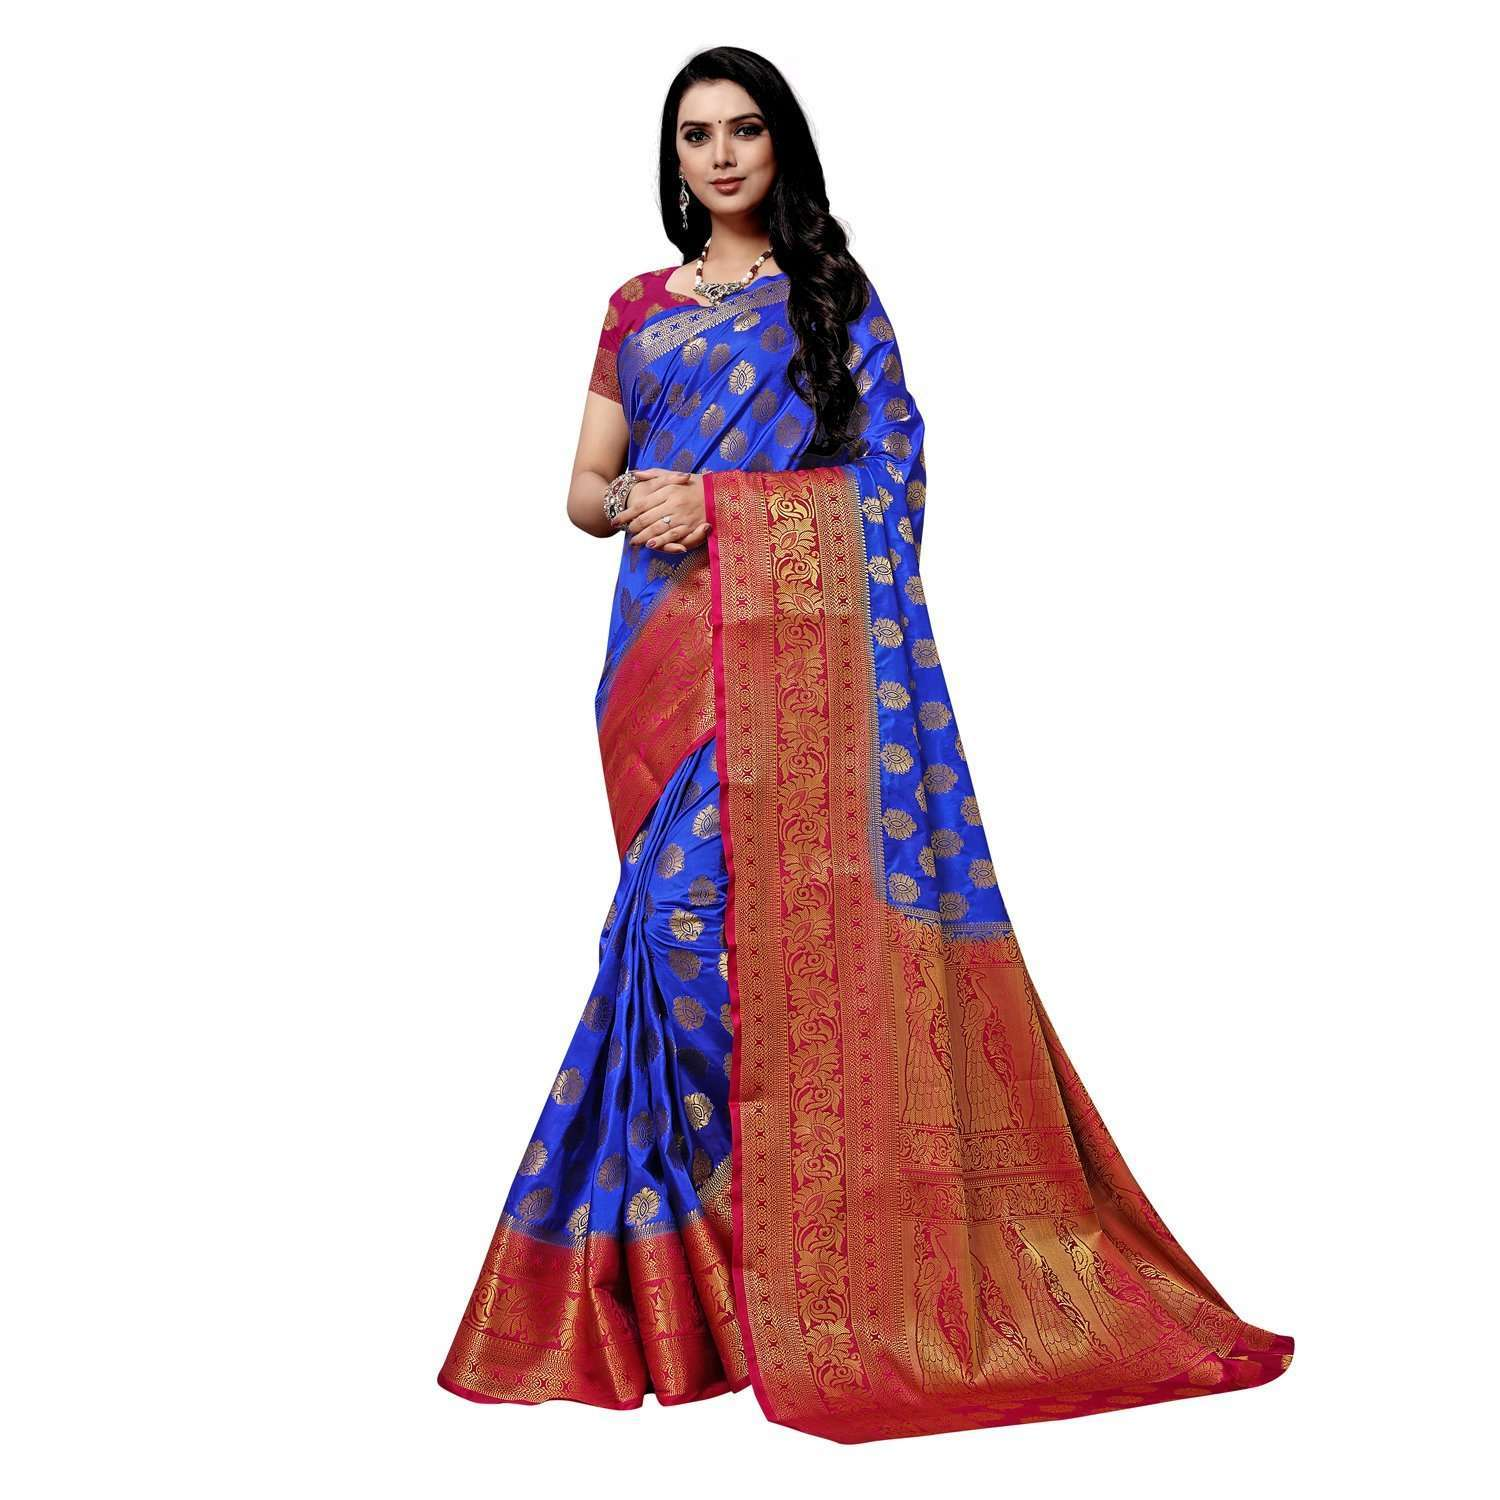 arars Women's kanchipuram kanjivaram pattu style art silk saree with blouse (282,royal blue)